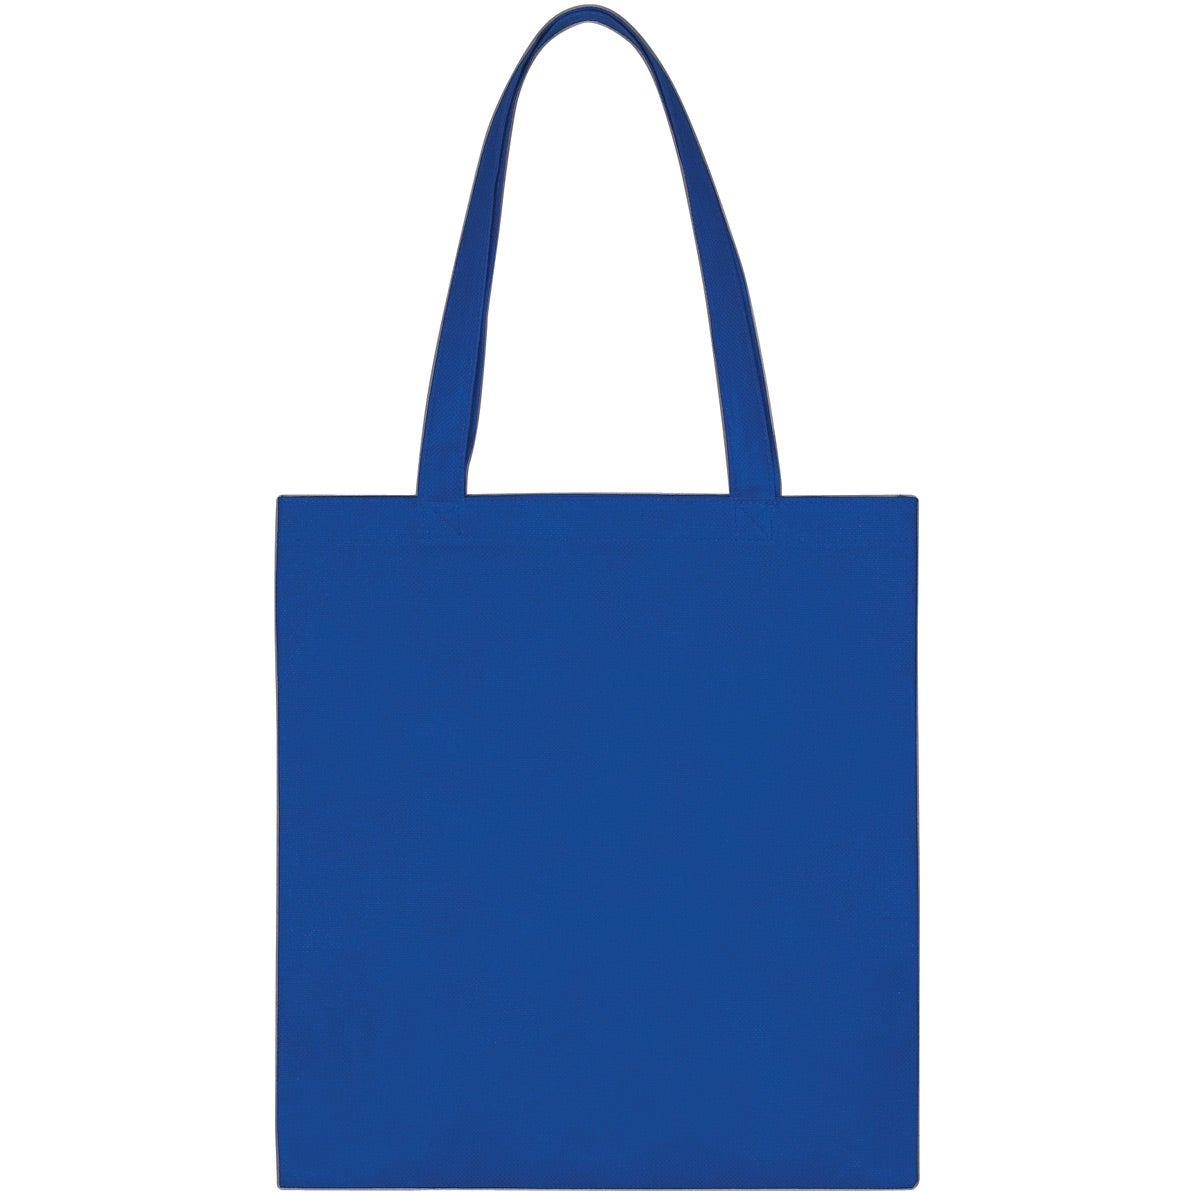 Promotional Non-Woven Economy Tote Bags with Custom Logo for $0.86 Ea.